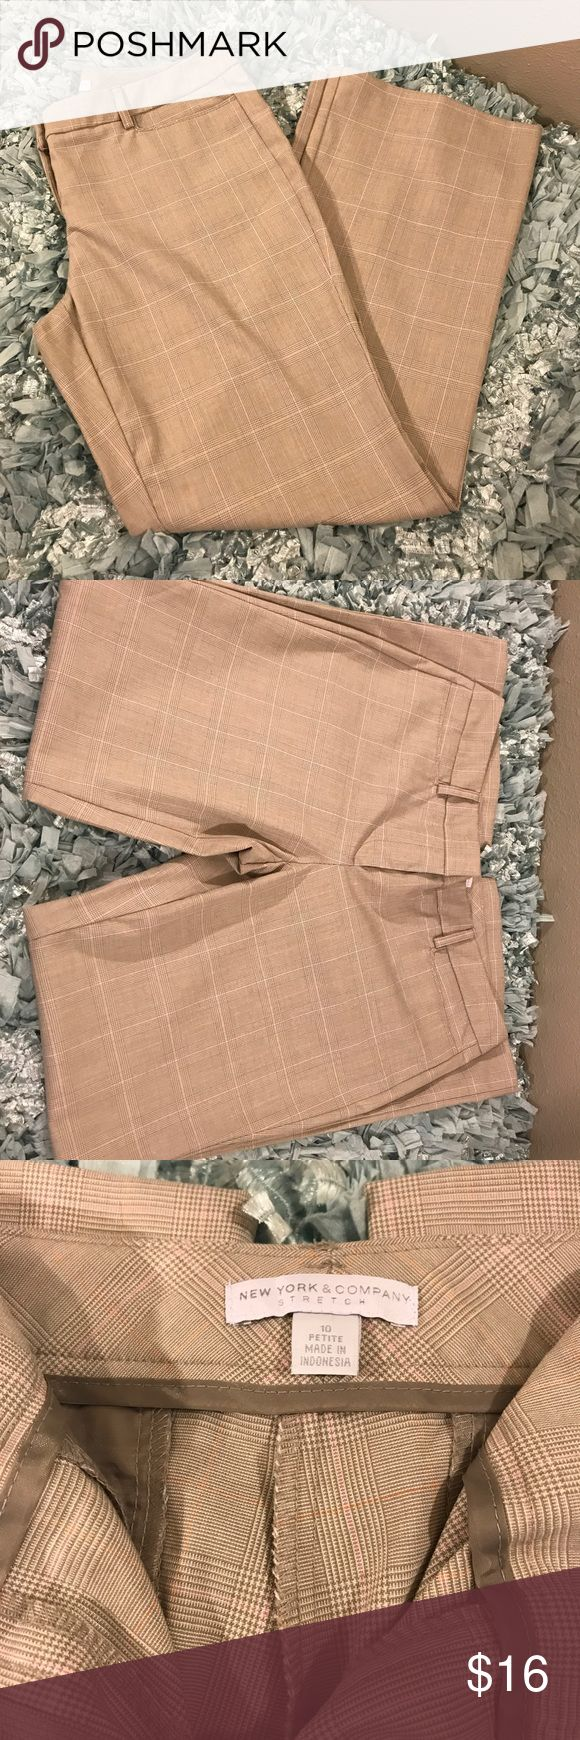 New York & Company Woman's Dress Pants New York & Company Woman's Stretch Dress Pants, Size 10 Petite New York & Company Pants Wide Leg